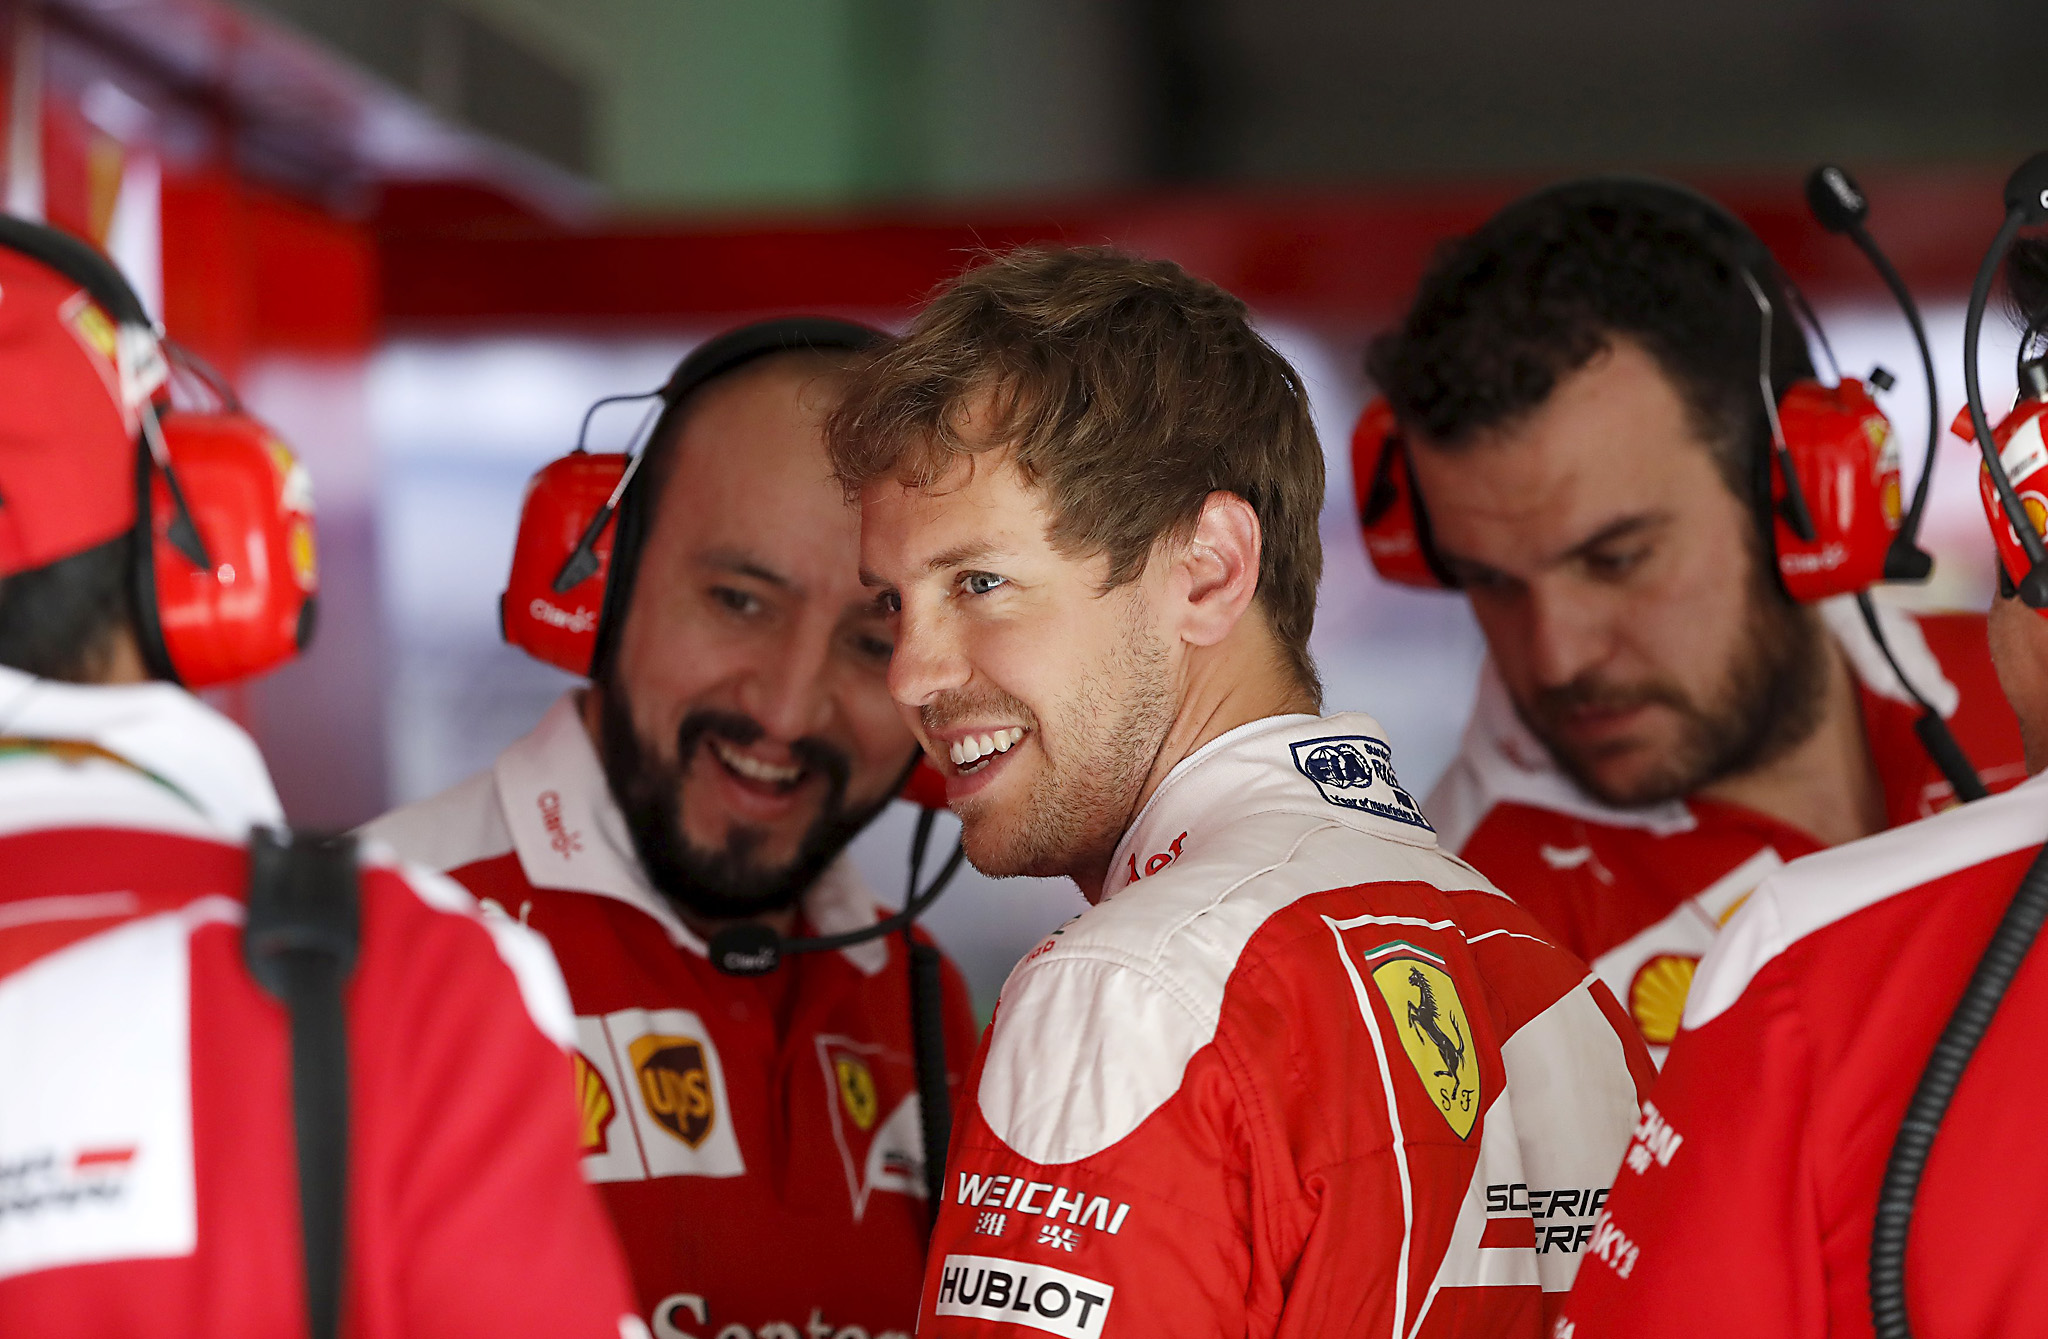 Formula One - Chinese Grand Prix - Shanghai...Formula One - Chinese Grand Prix - Shanghai, China - 4/15/16 - Ferrari Formula One driver Sebastian Vettel of Germany arrives at his garage during the first practice session.  REUTERS/Aly Song